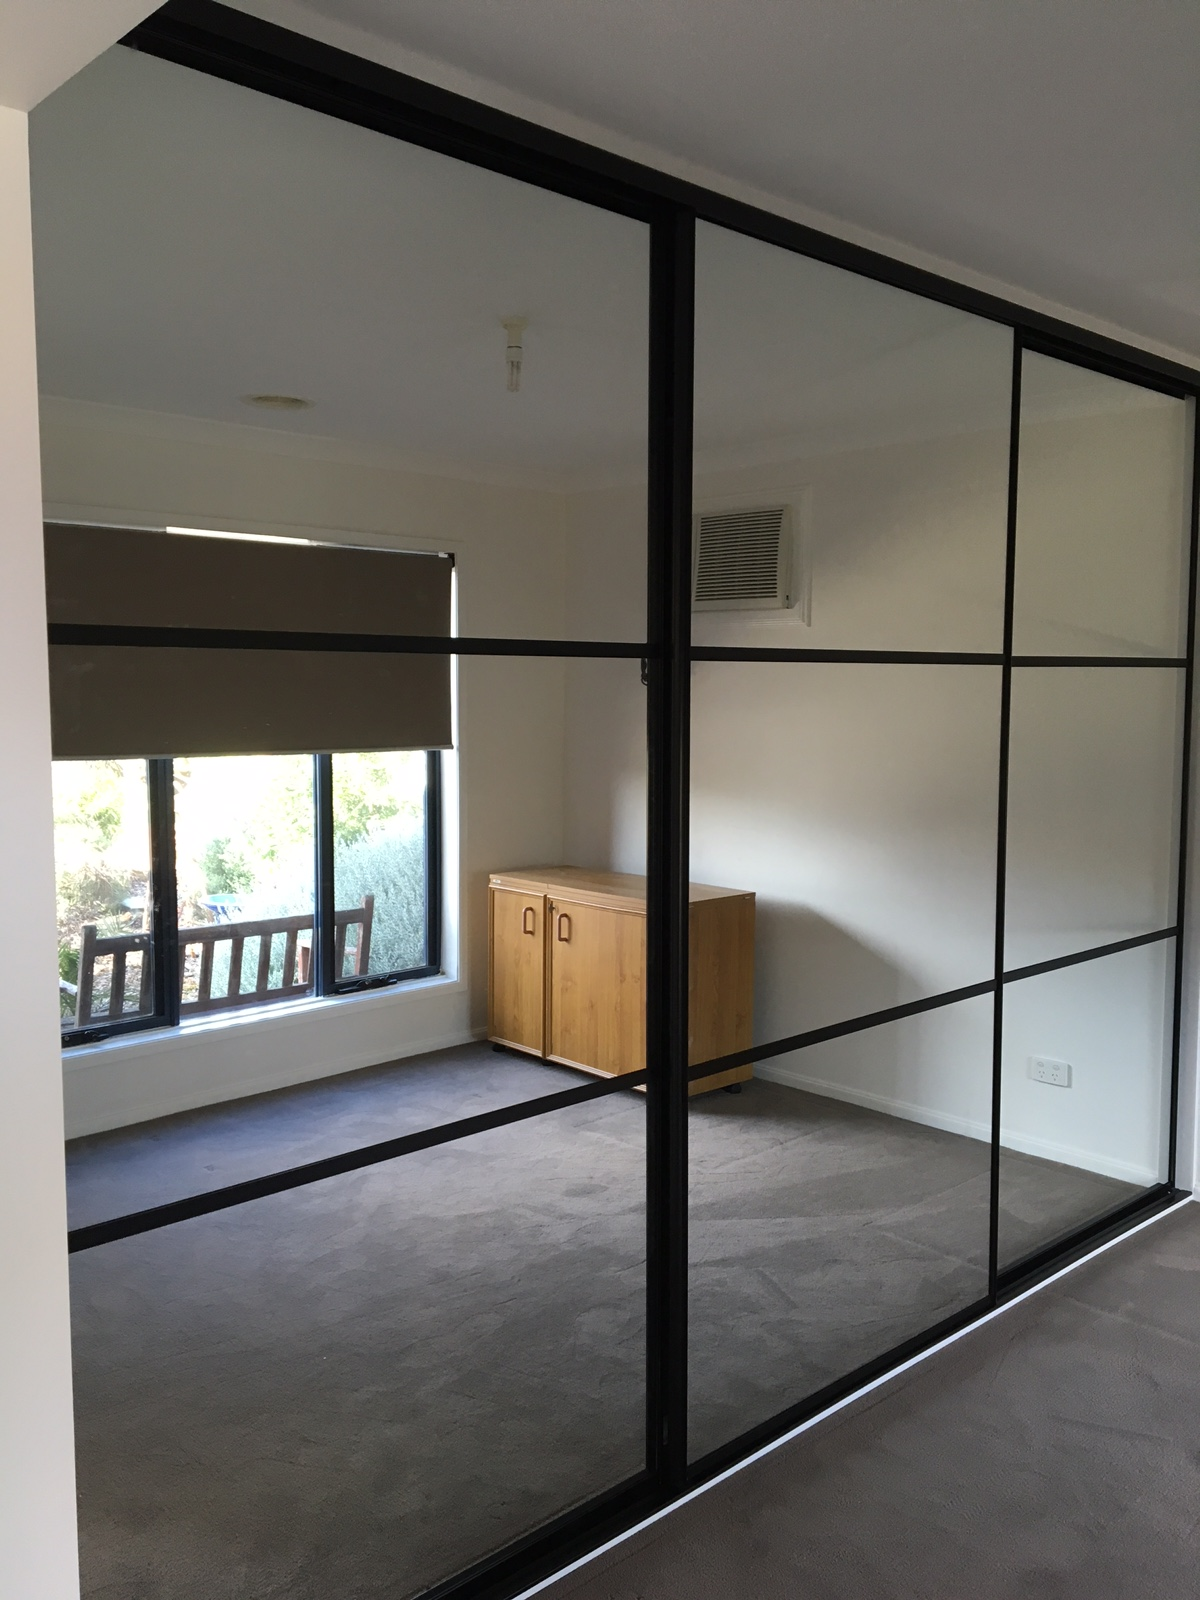 Split panel sliding wardrobe doors